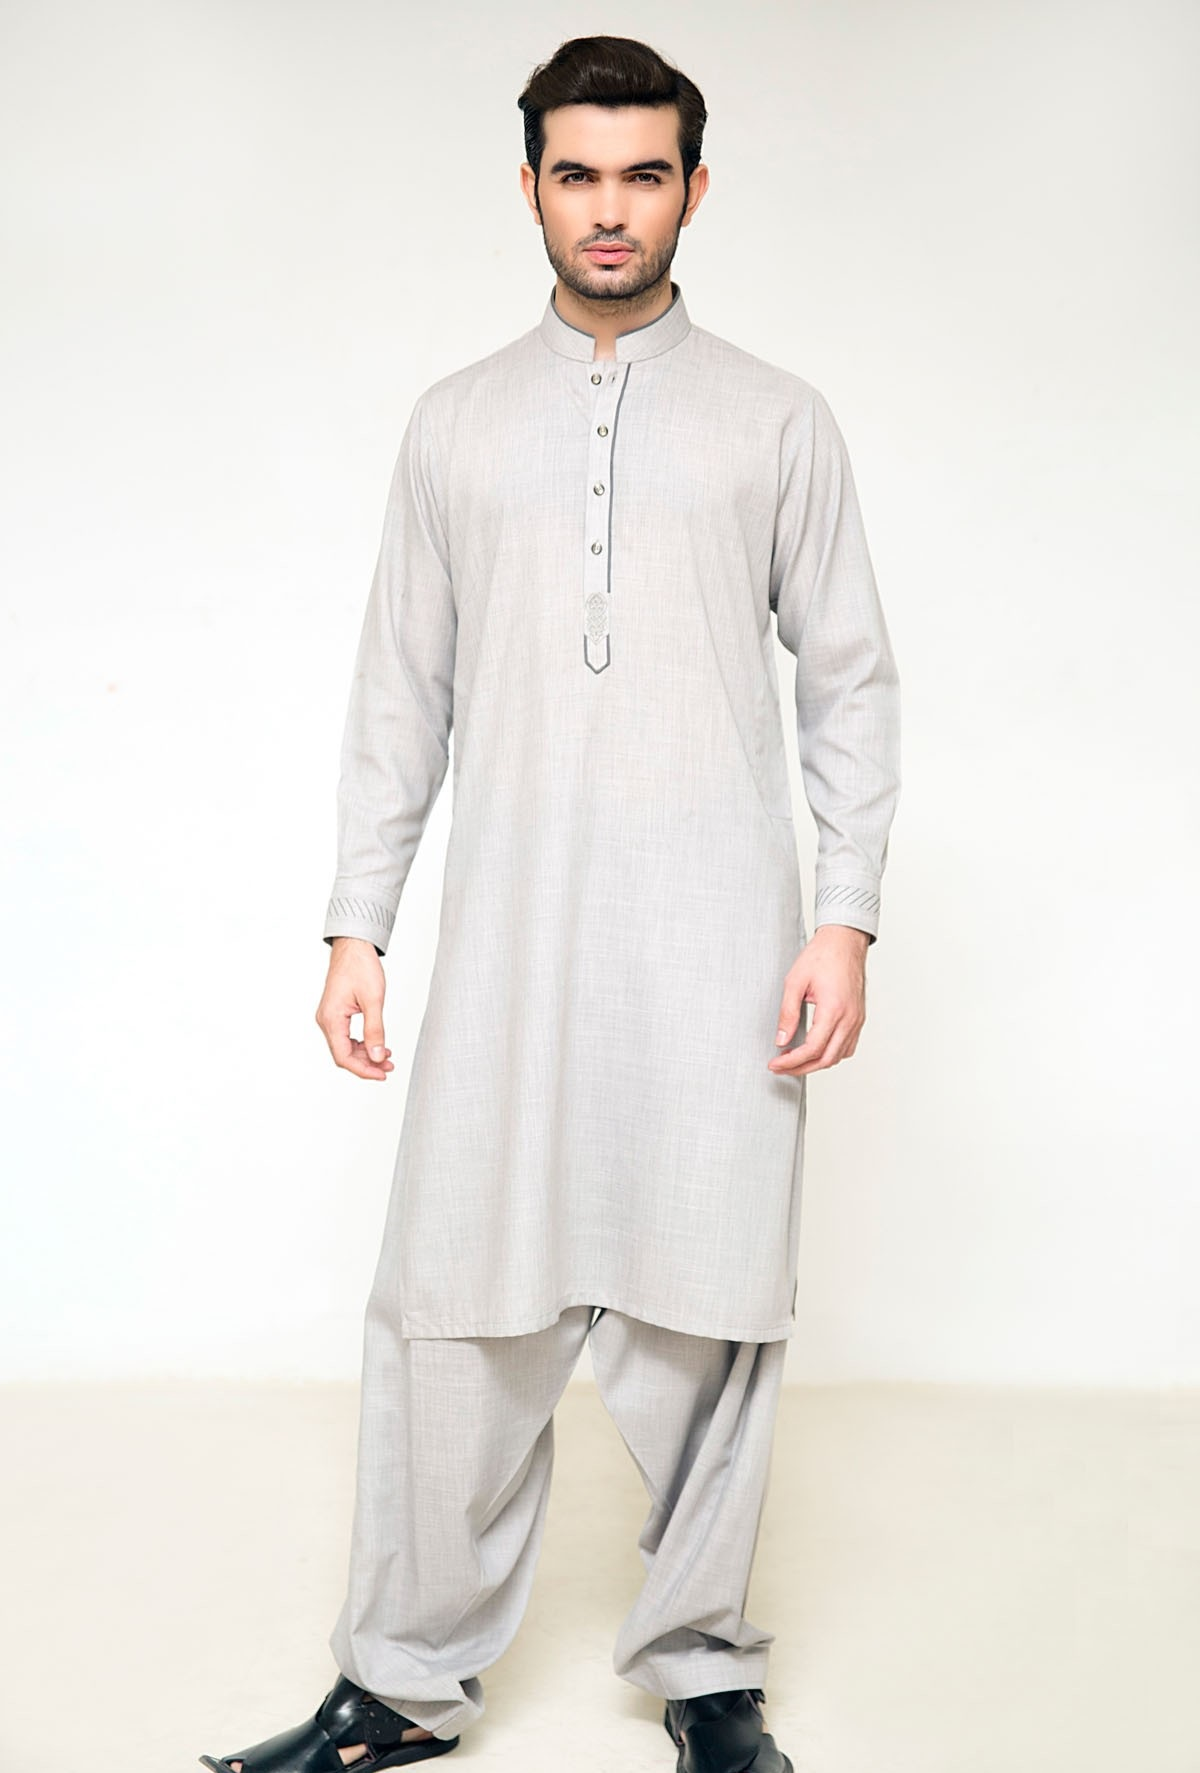 Men's Eid Kurtas 2016-2017 by Bonanza (19)